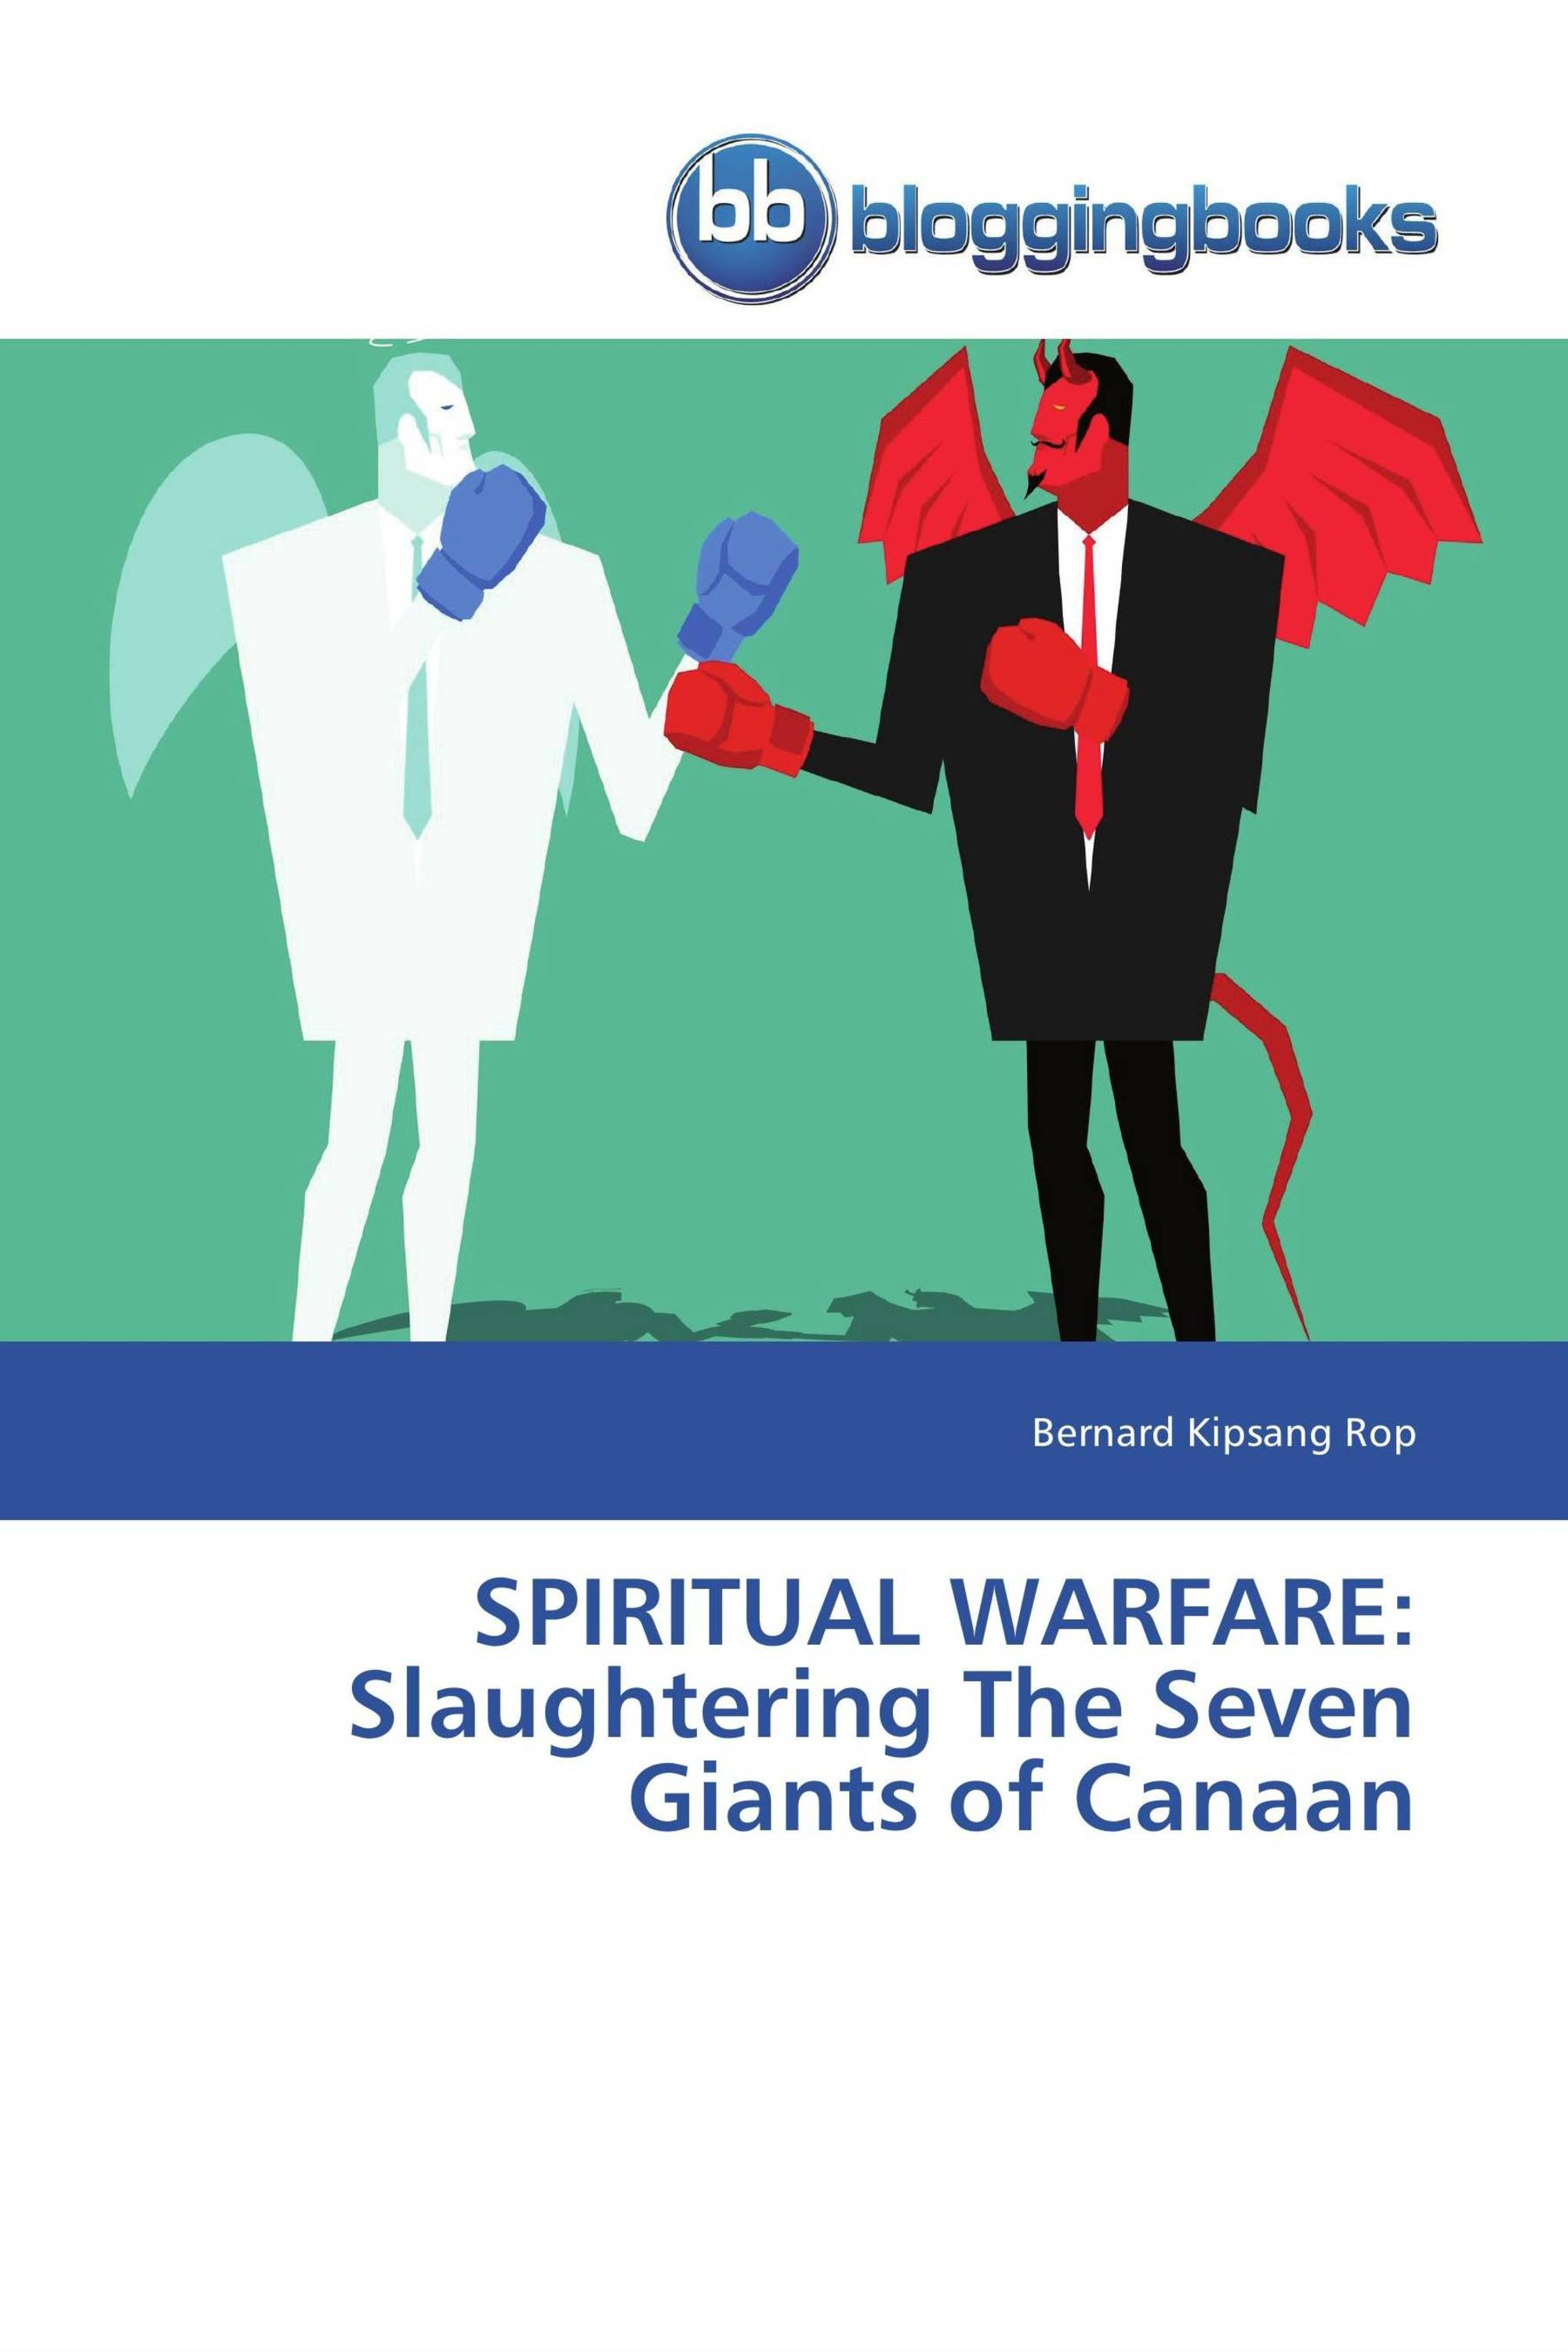 SPIRITUAL WARFARE: Slaughtering The Seven Giants of Canaan